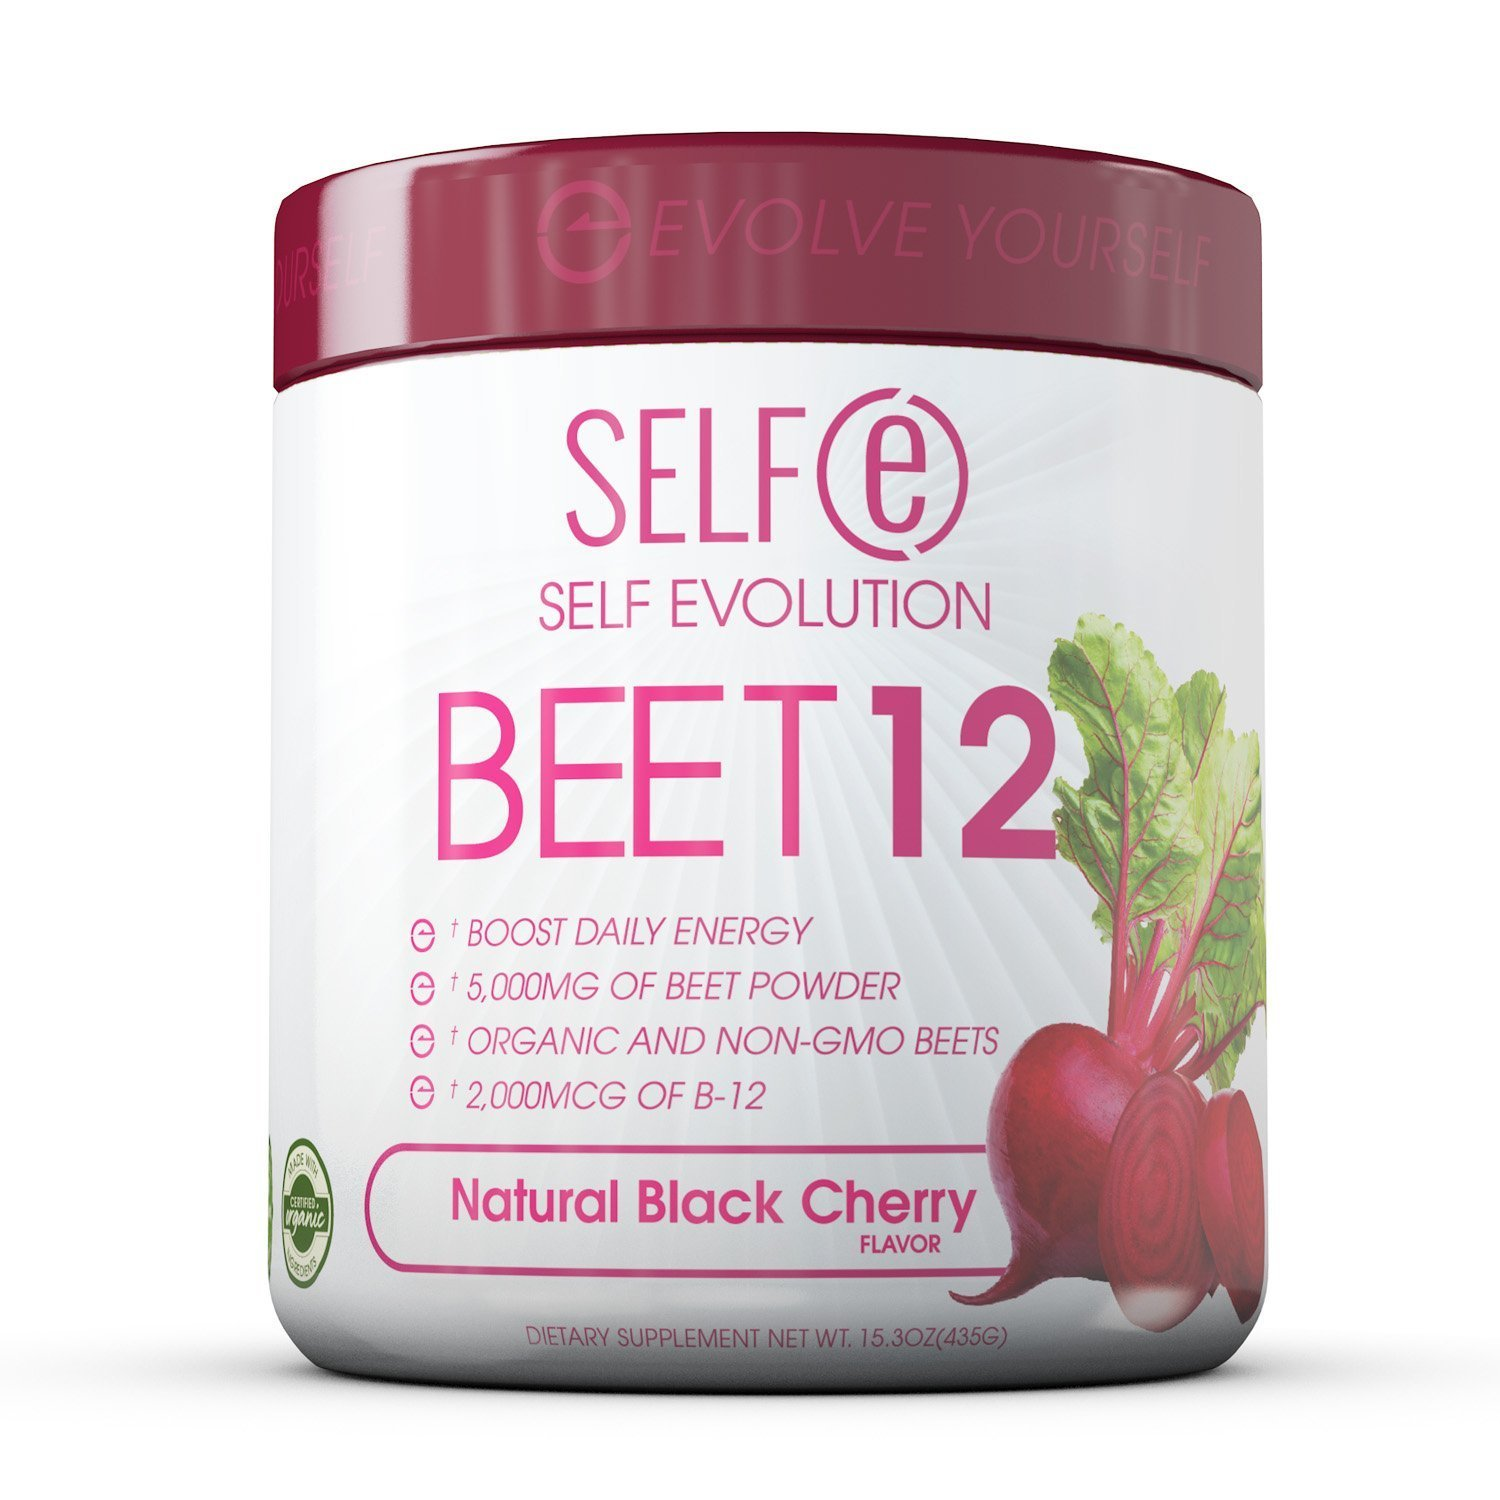 Selfe Beet 12 - Beetroot Powder Supplement Plus Vitamin B12 - Black Cherry - 5G - 30 Servings